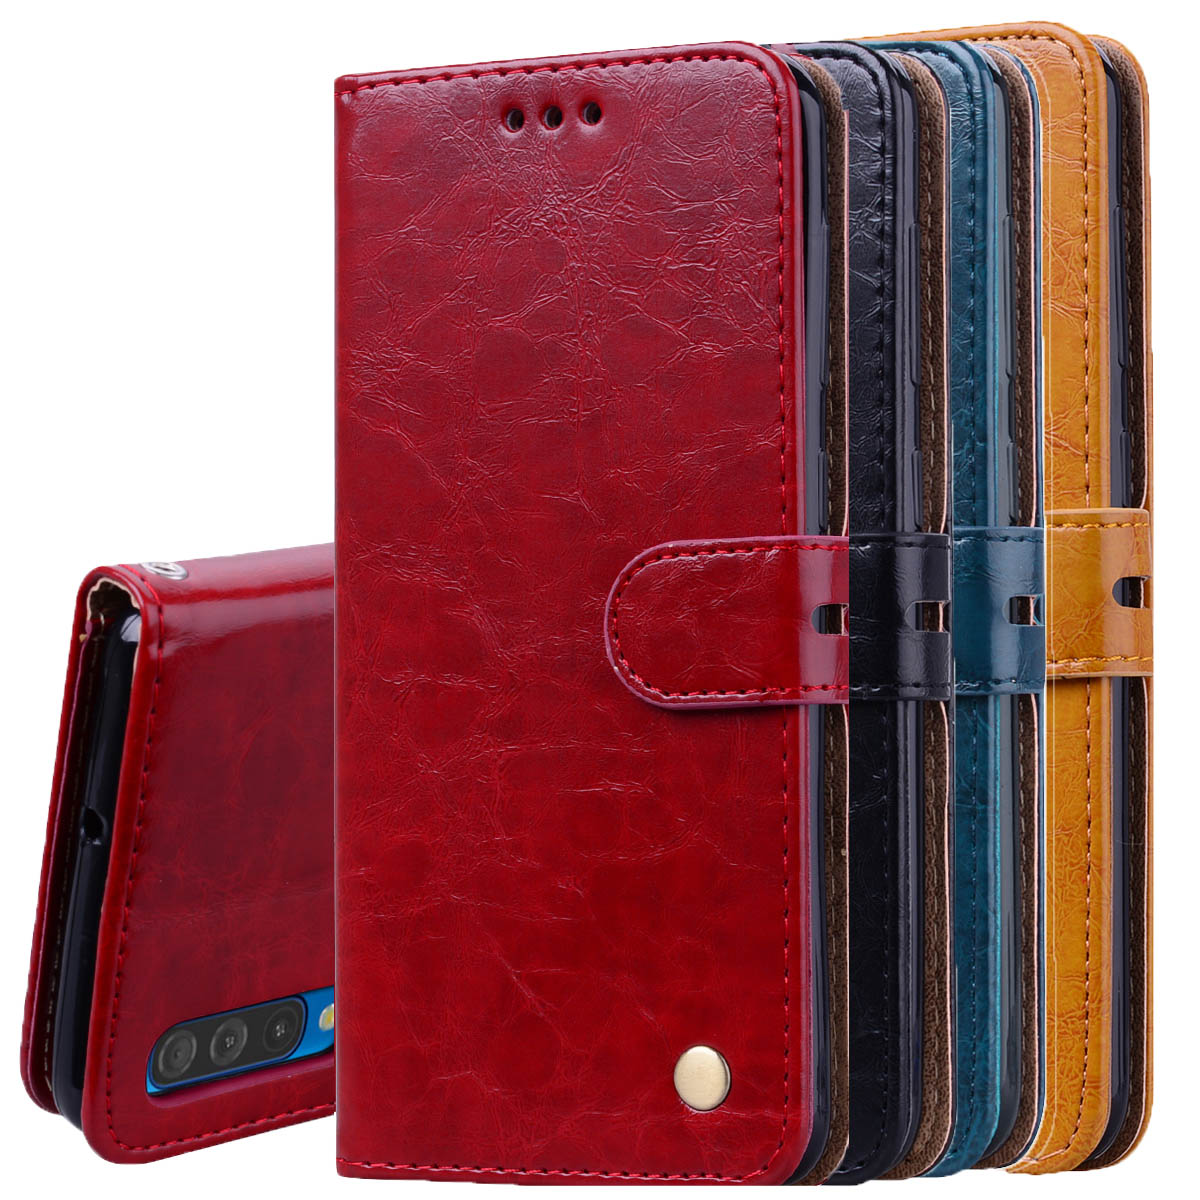 Leather Wallet Case For Samsung Galaxy M30 M20 M10 A70 A50 A40 A30 A20 A10 2019 on A9 A8 A6 A7 J4 J6 J8 2018 S10 S9 S8 Plus S10e